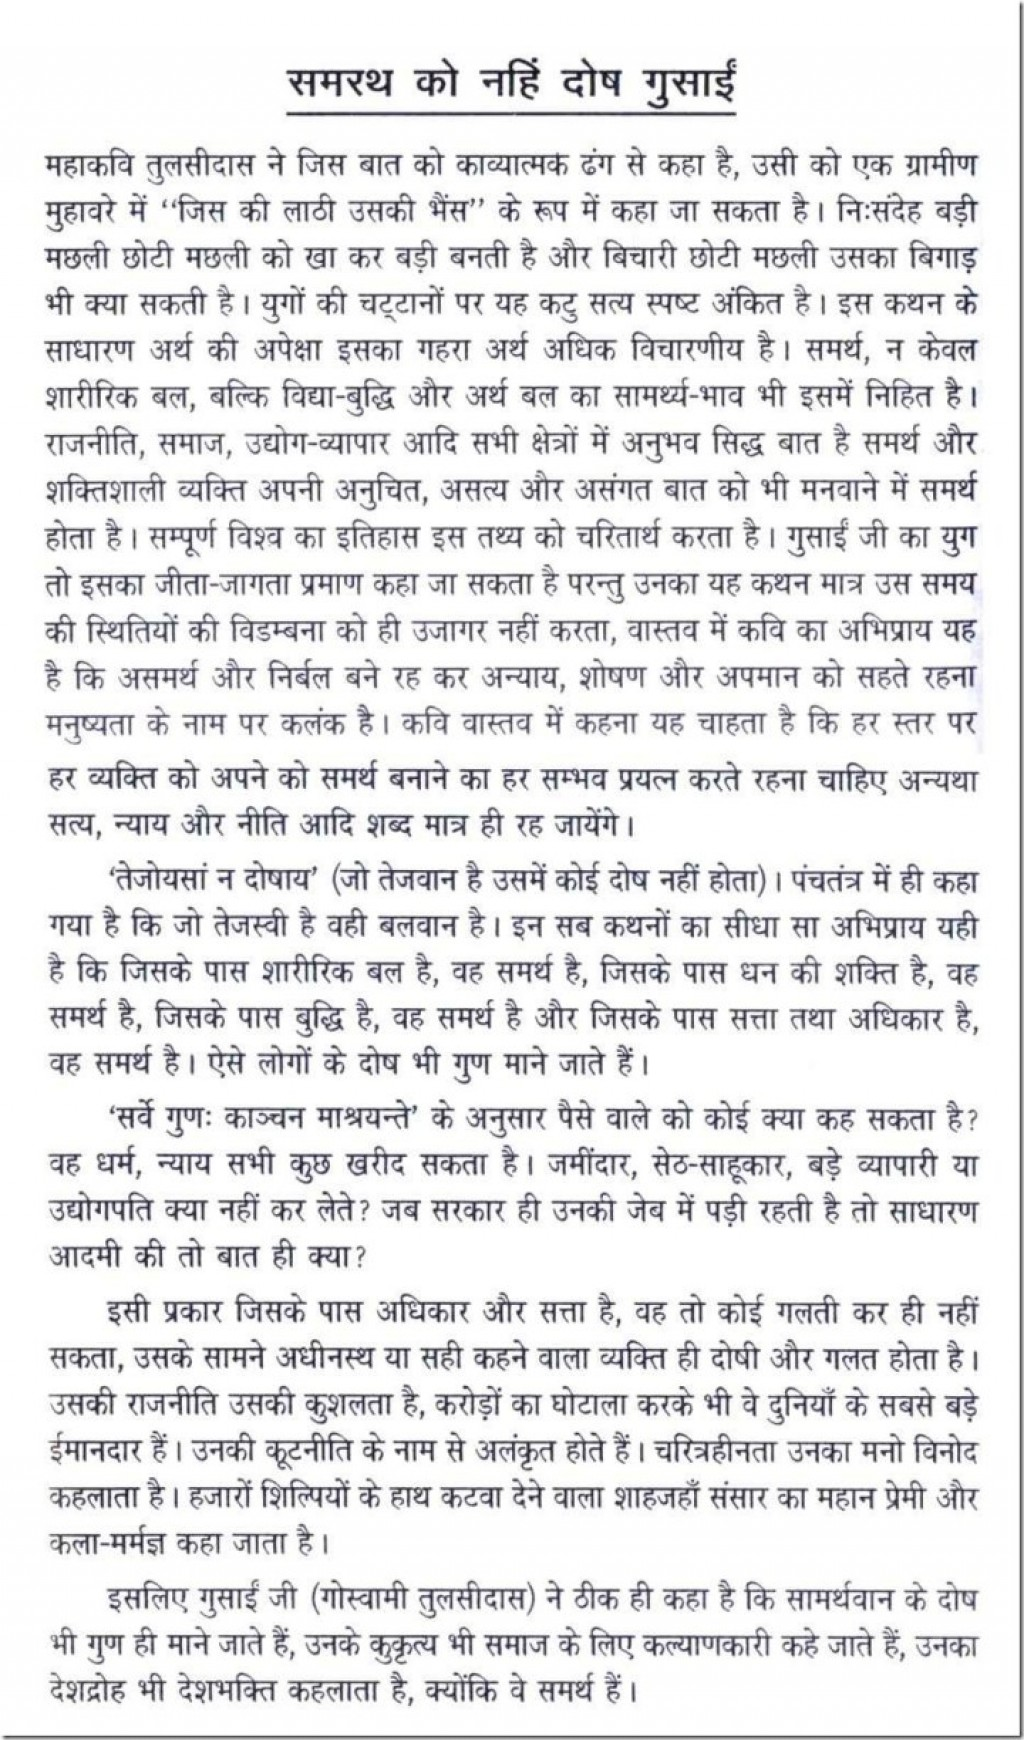 007 Good Habits Essay In Hindi Example Hh0055 Thumbresize7202c1224 Exceptional Healthy Eating Reading Is A Habit Large